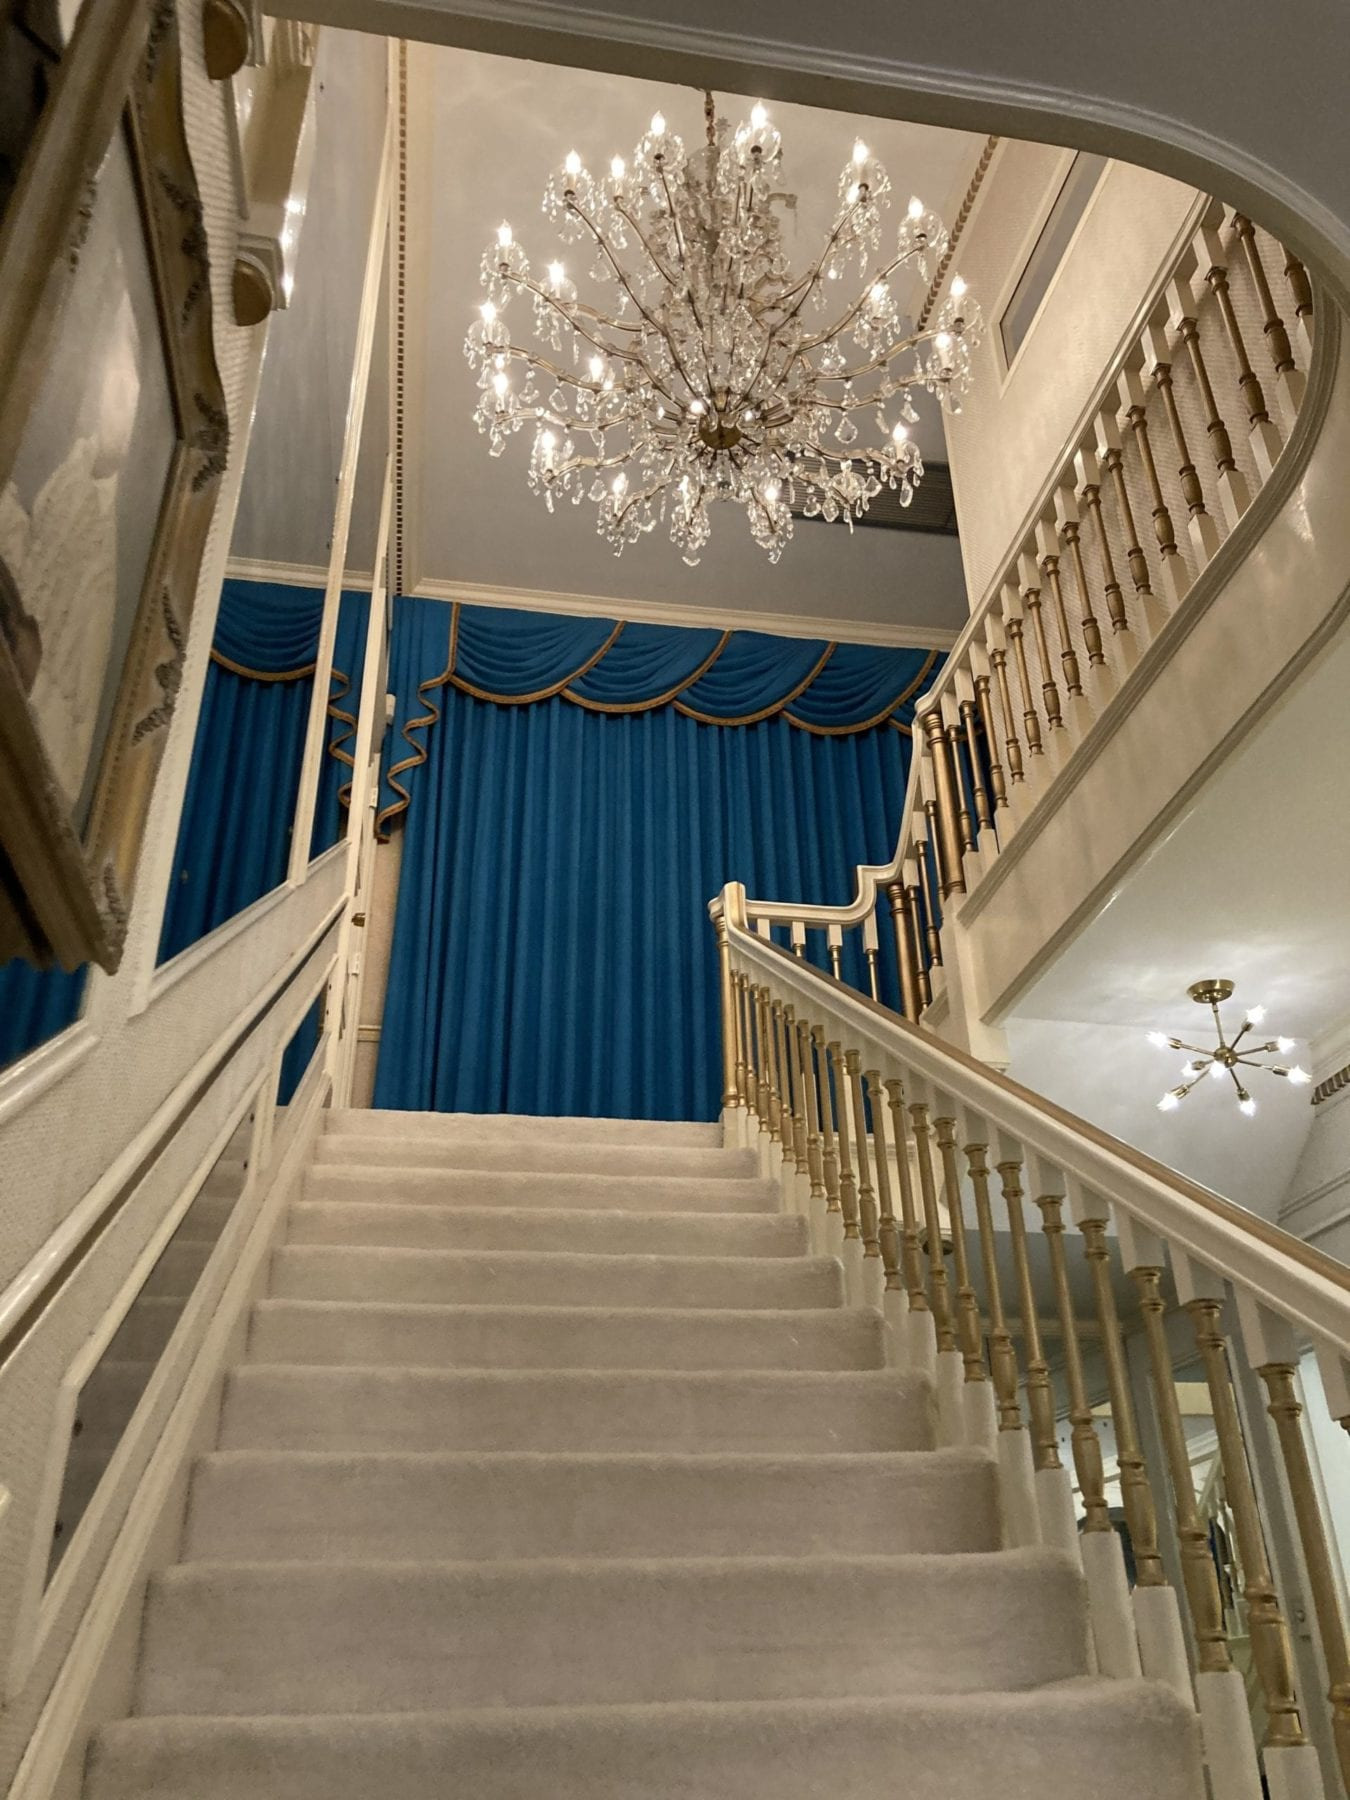 Staircase at Graceland